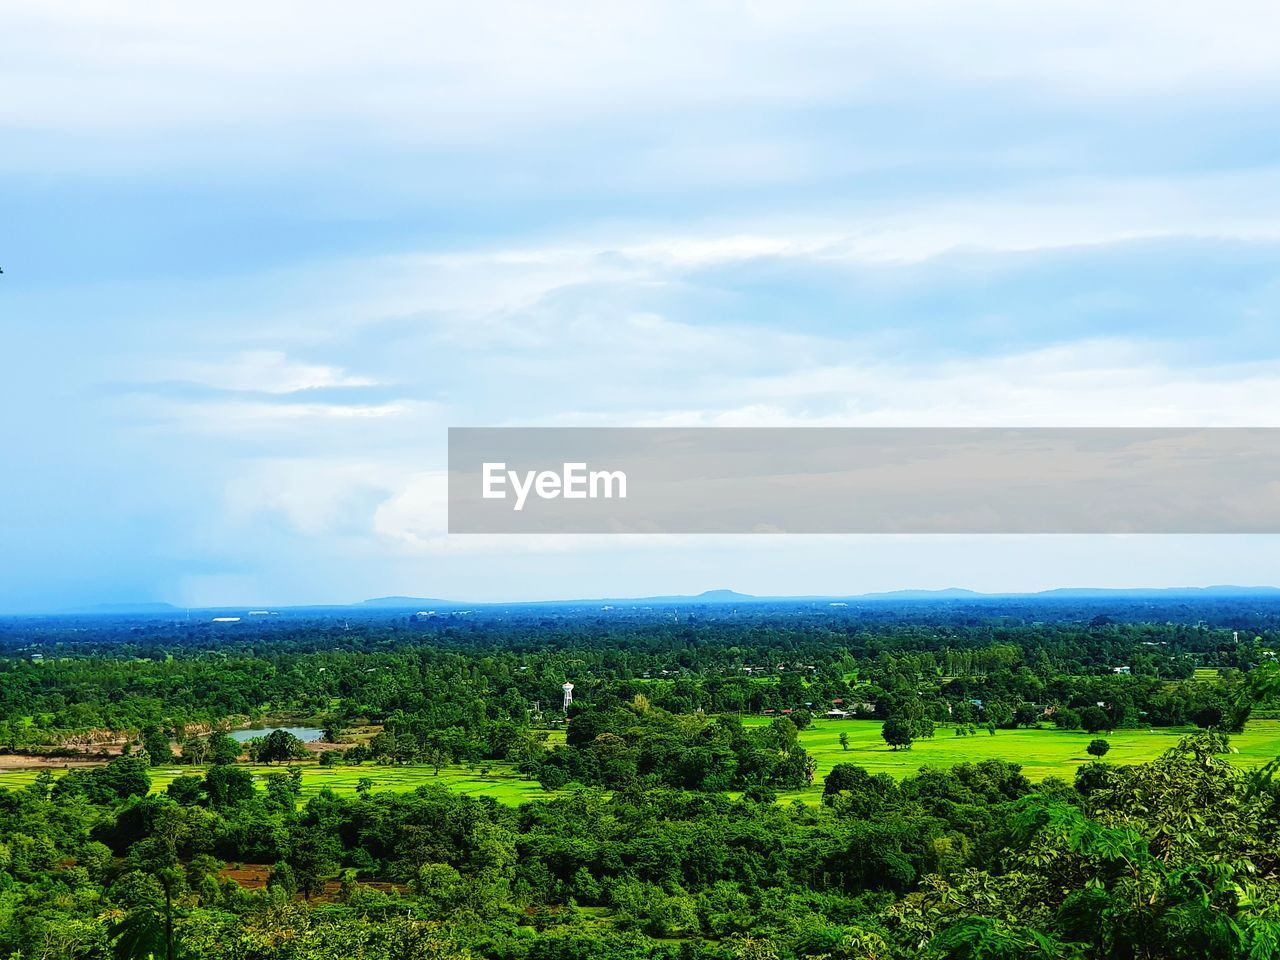 landscape, environment, plant, beauty in nature, cloud - sky, scenics - nature, sky, tree, nature, green color, tranquil scene, growth, tranquility, day, field, land, no people, rural scene, non-urban scene, agriculture, outdoors, winemaking